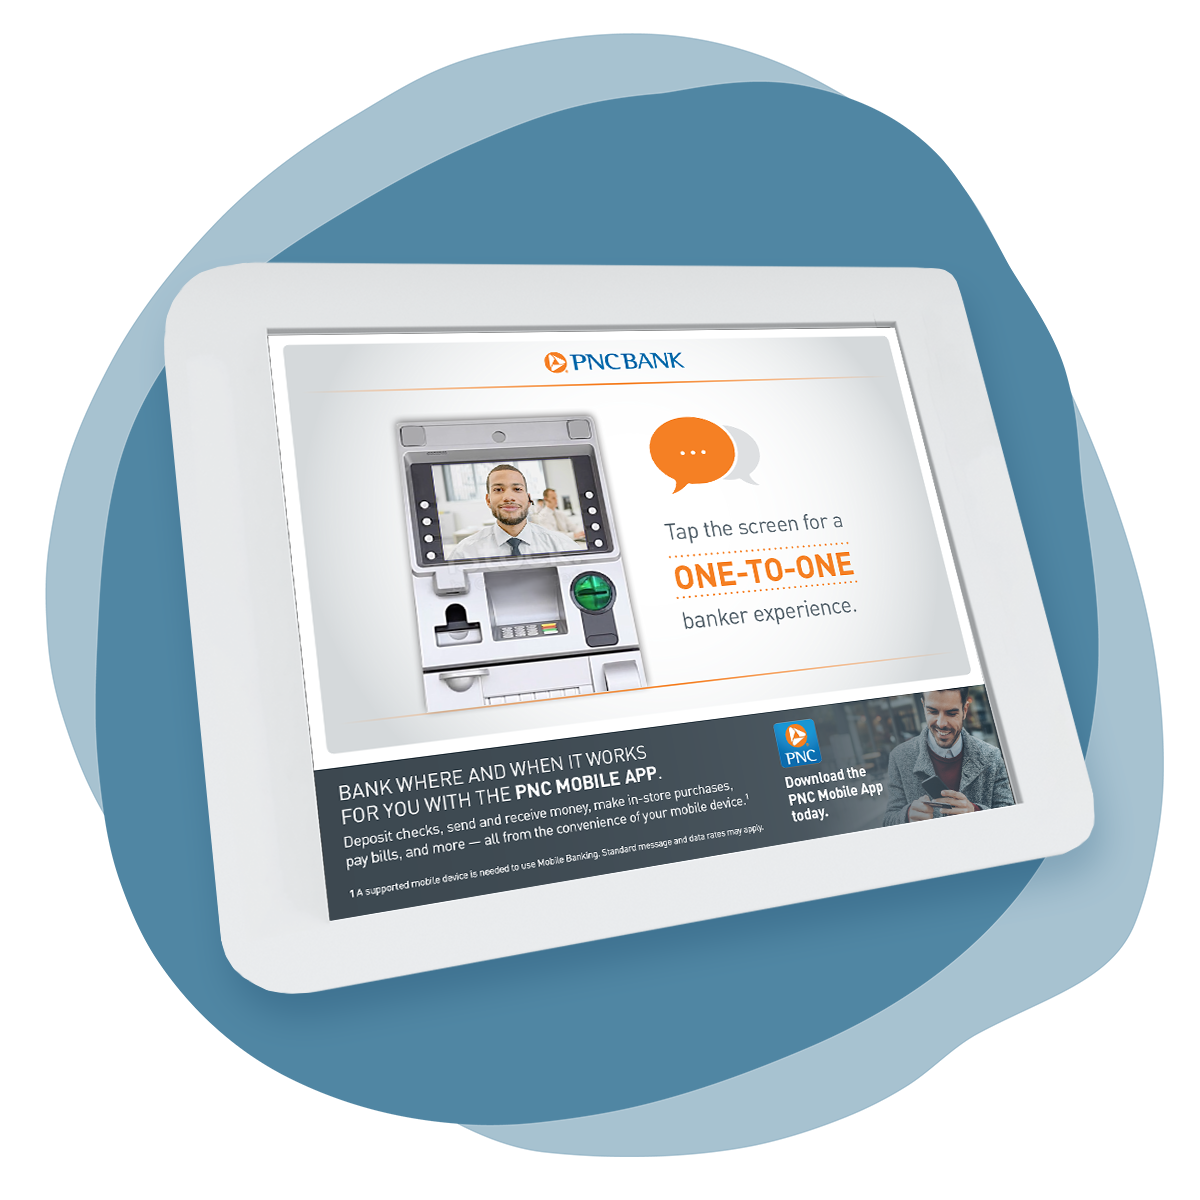 """Organic blue splotch shape with a mockup of an ATM screen overlaid. The screen features a light gray gradient background, an image of an ATM with a banker's face on the screen to the left, and an orange speech bubble icon and copy reading """"Tap the screen for a one-to-one banker experience"""" to the right."""